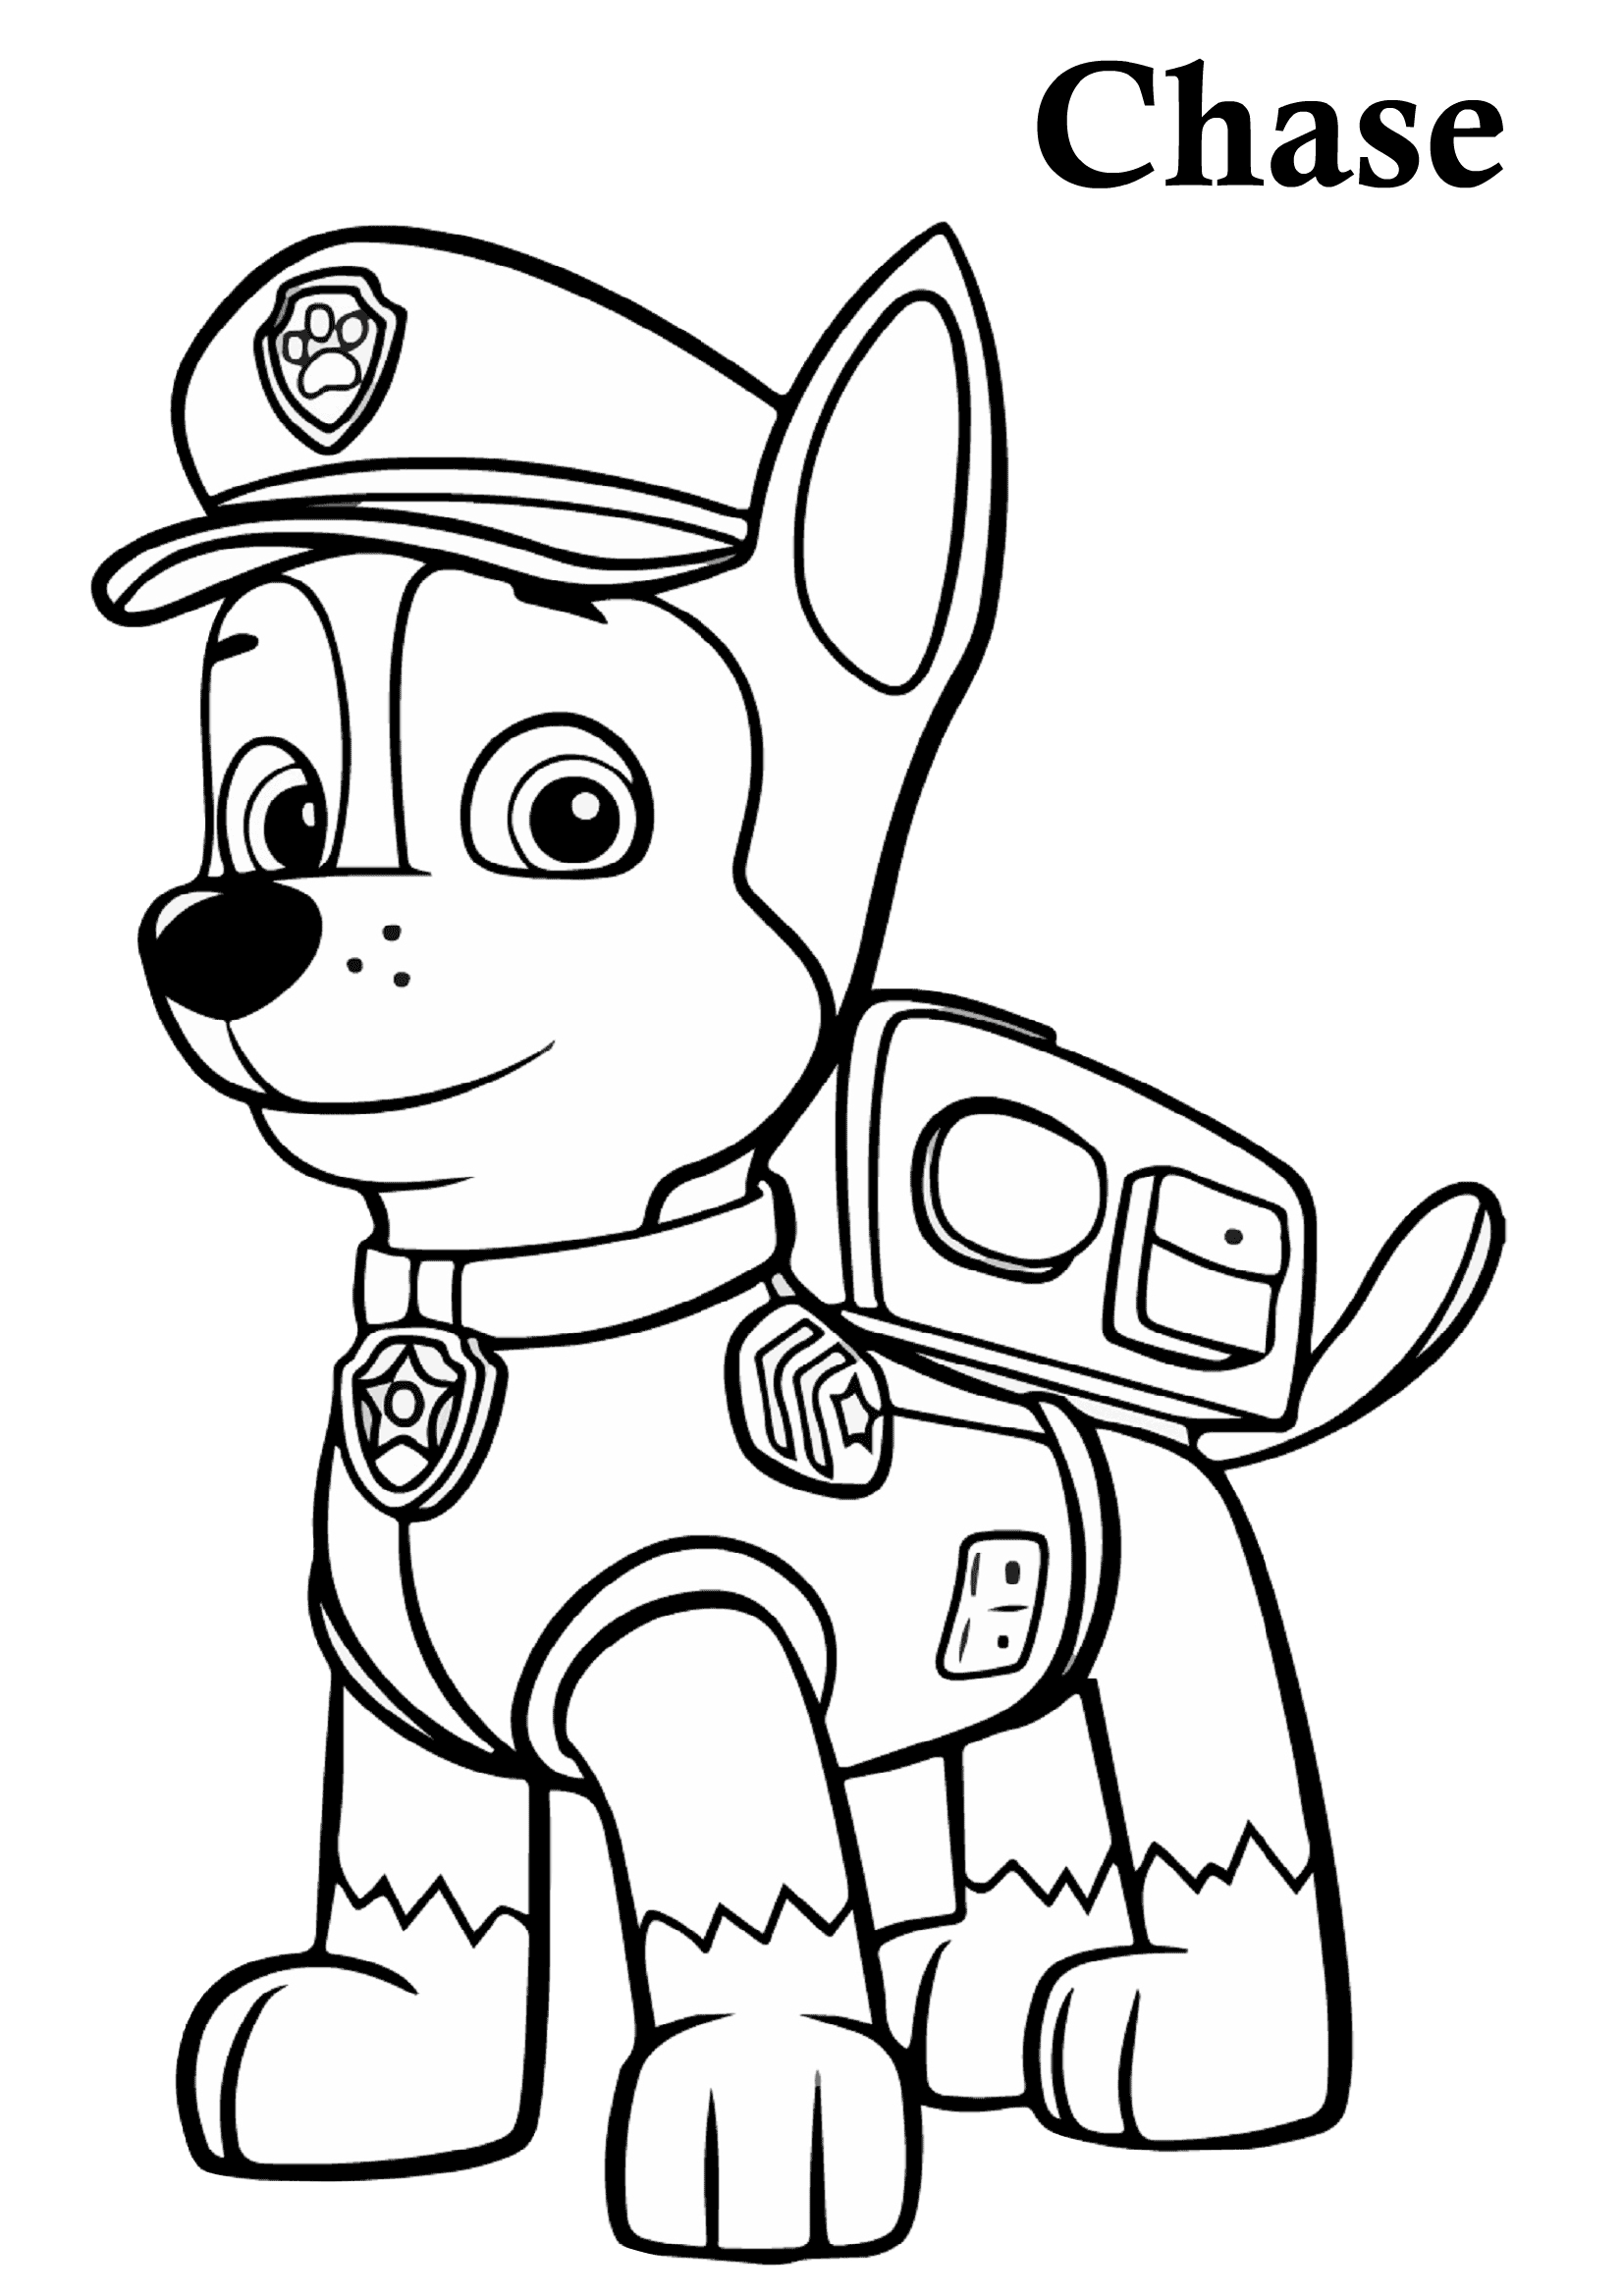 27 Paw Patrol Coloring Pages Printable